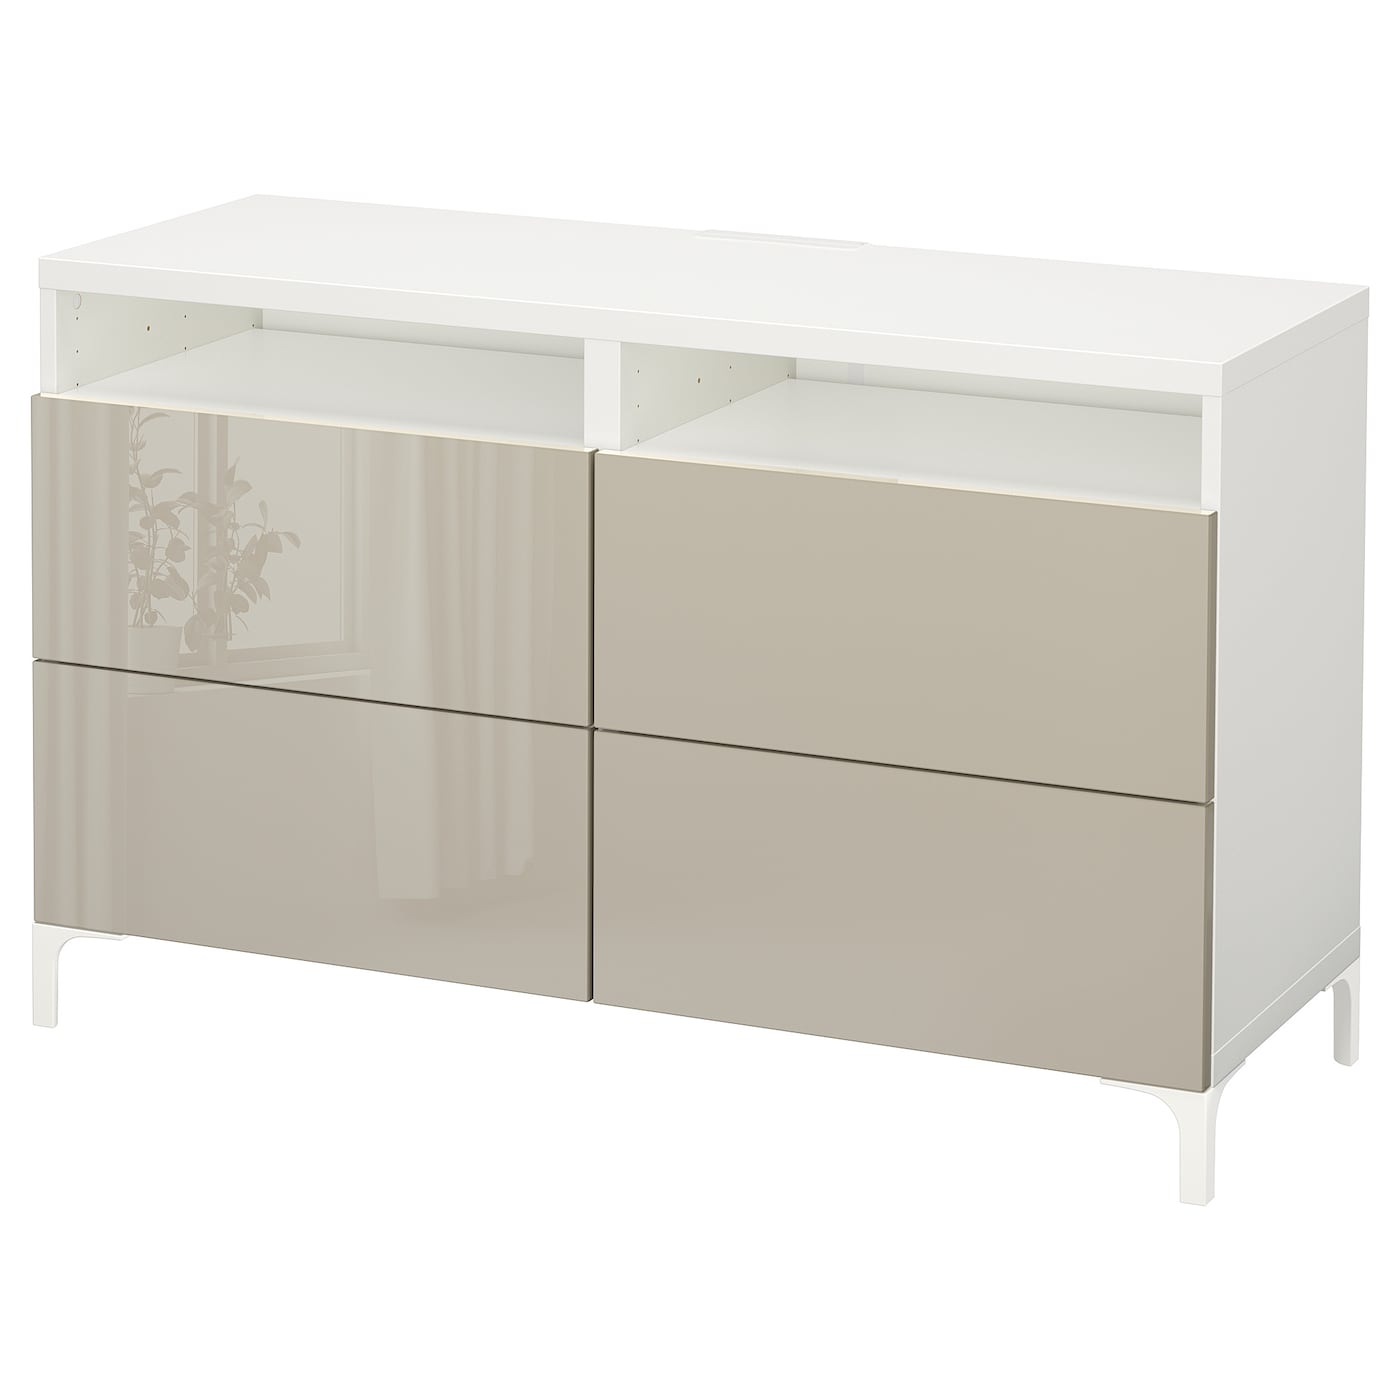 Living Room Cabinets High Gloss Soft Closing TV Stand Bedside Chest of Drawers